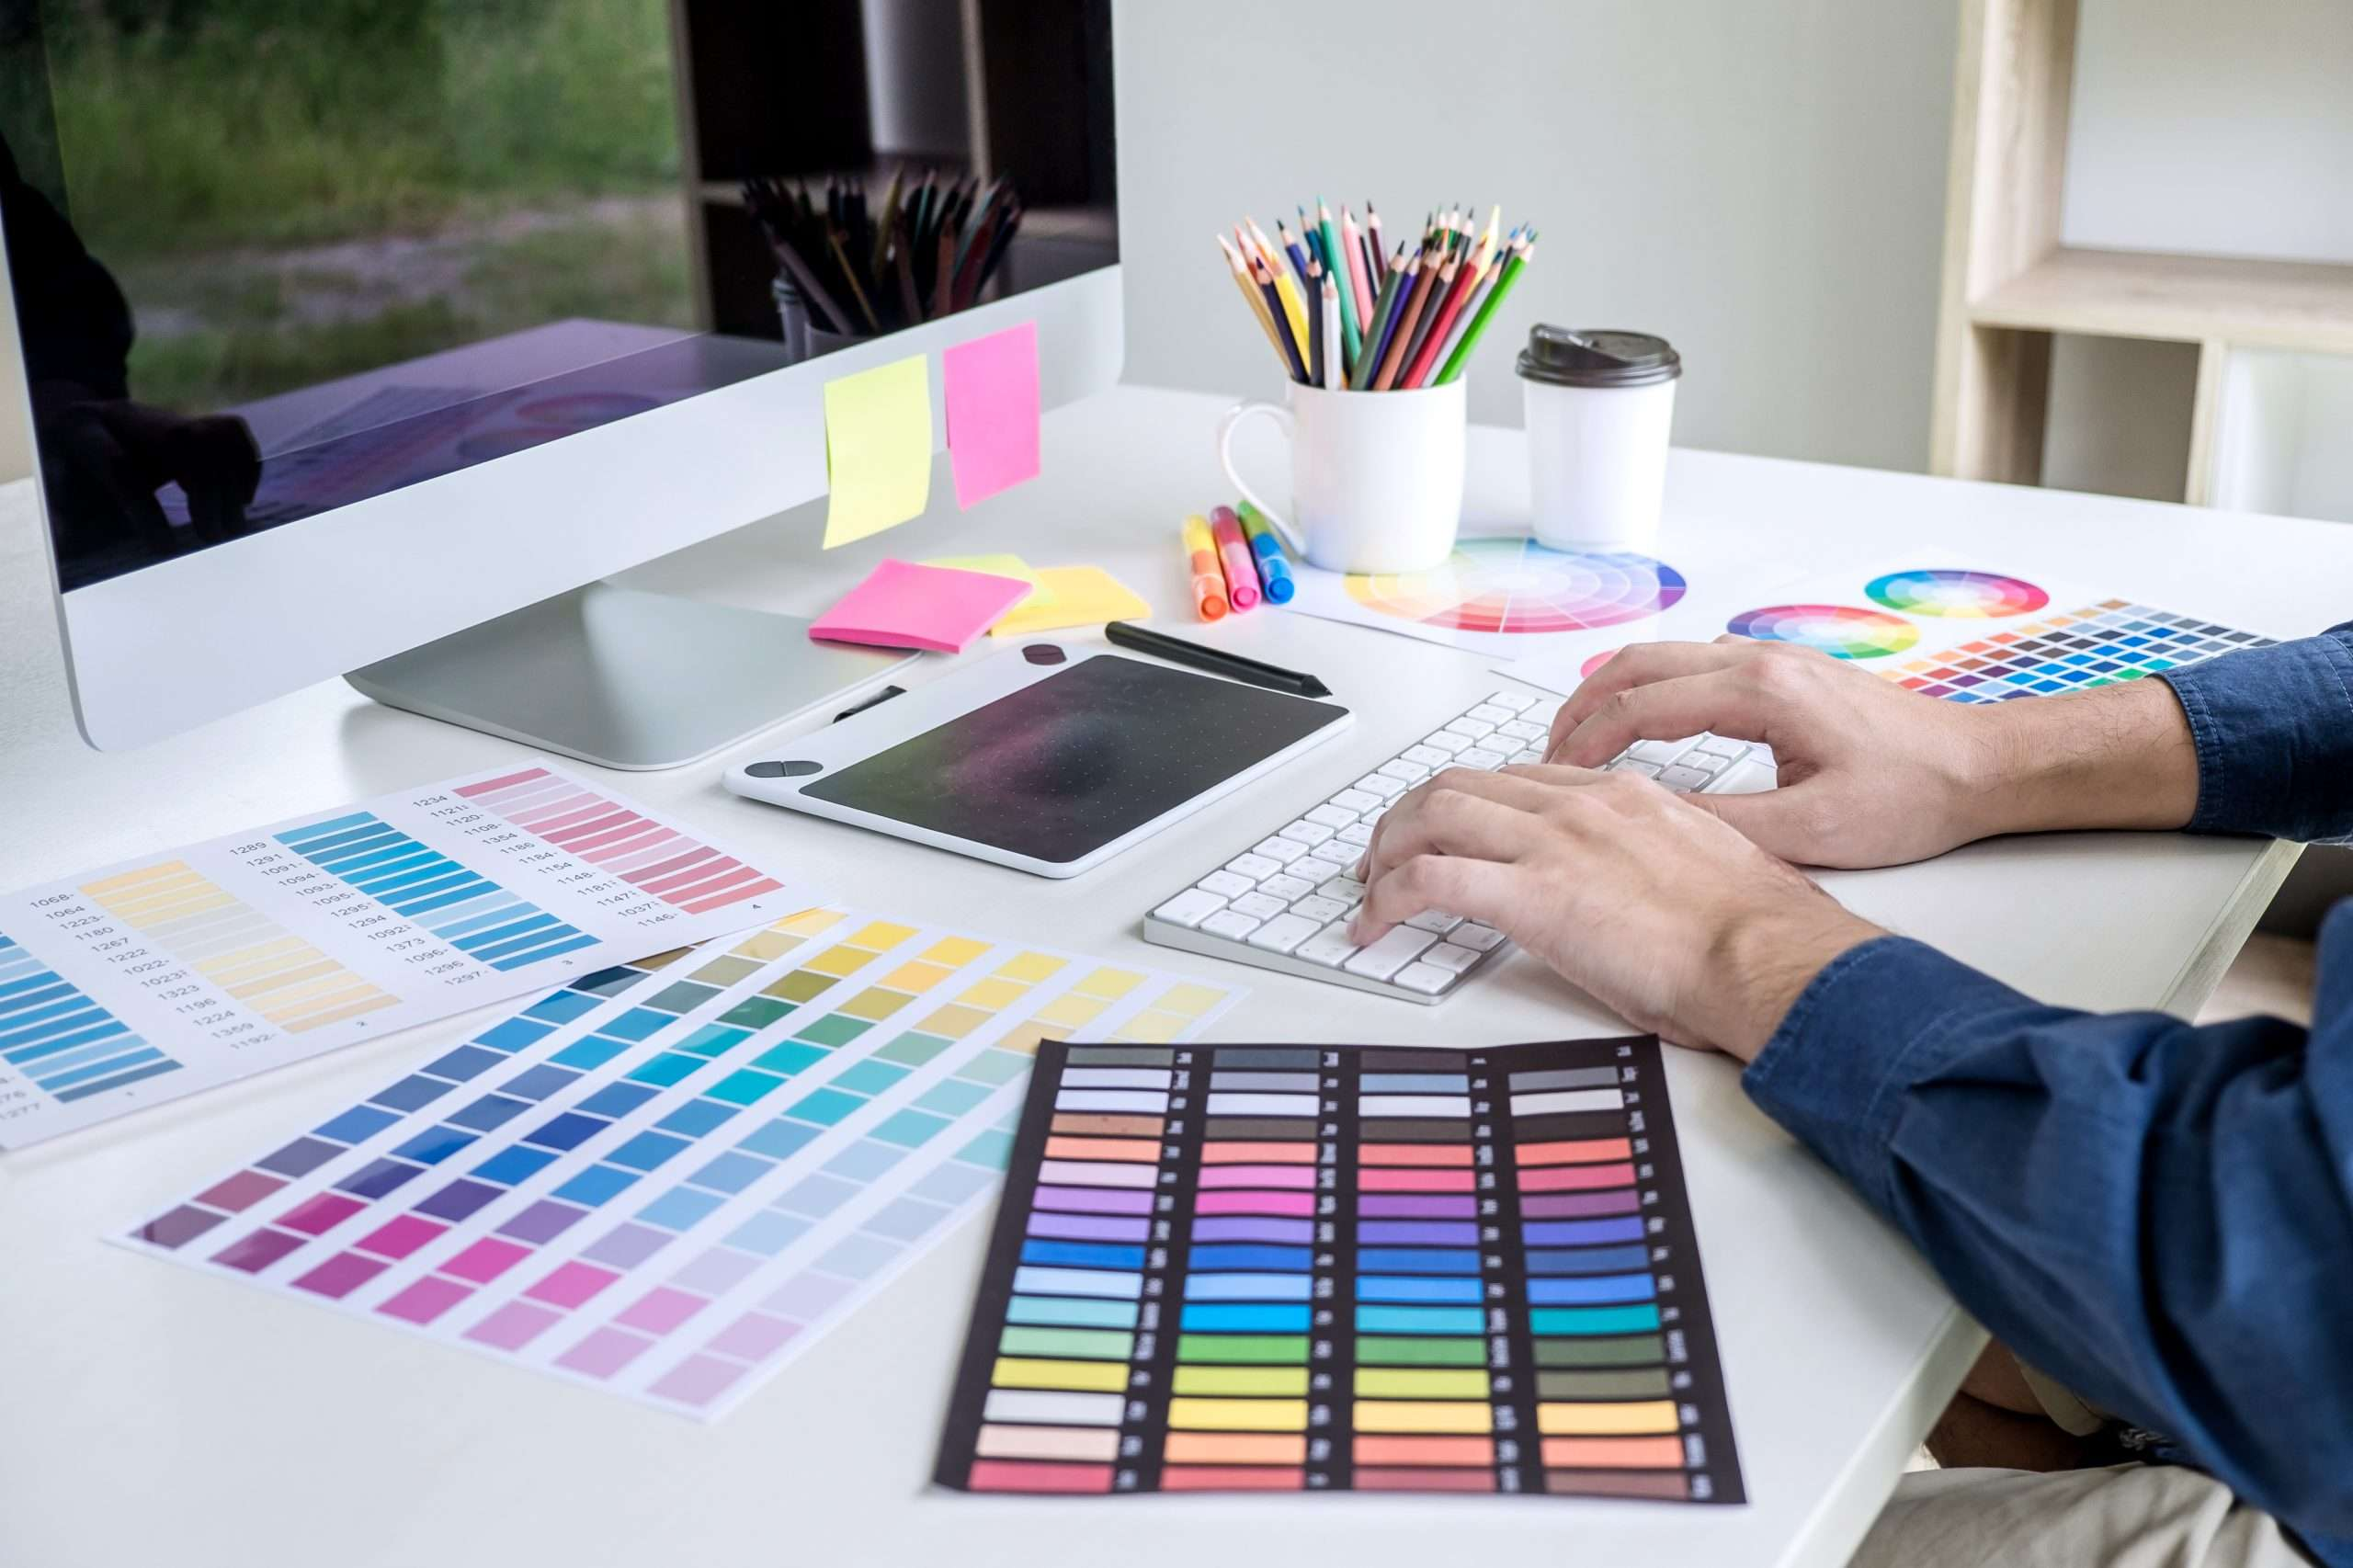 A designer works on creating a logo for a business.